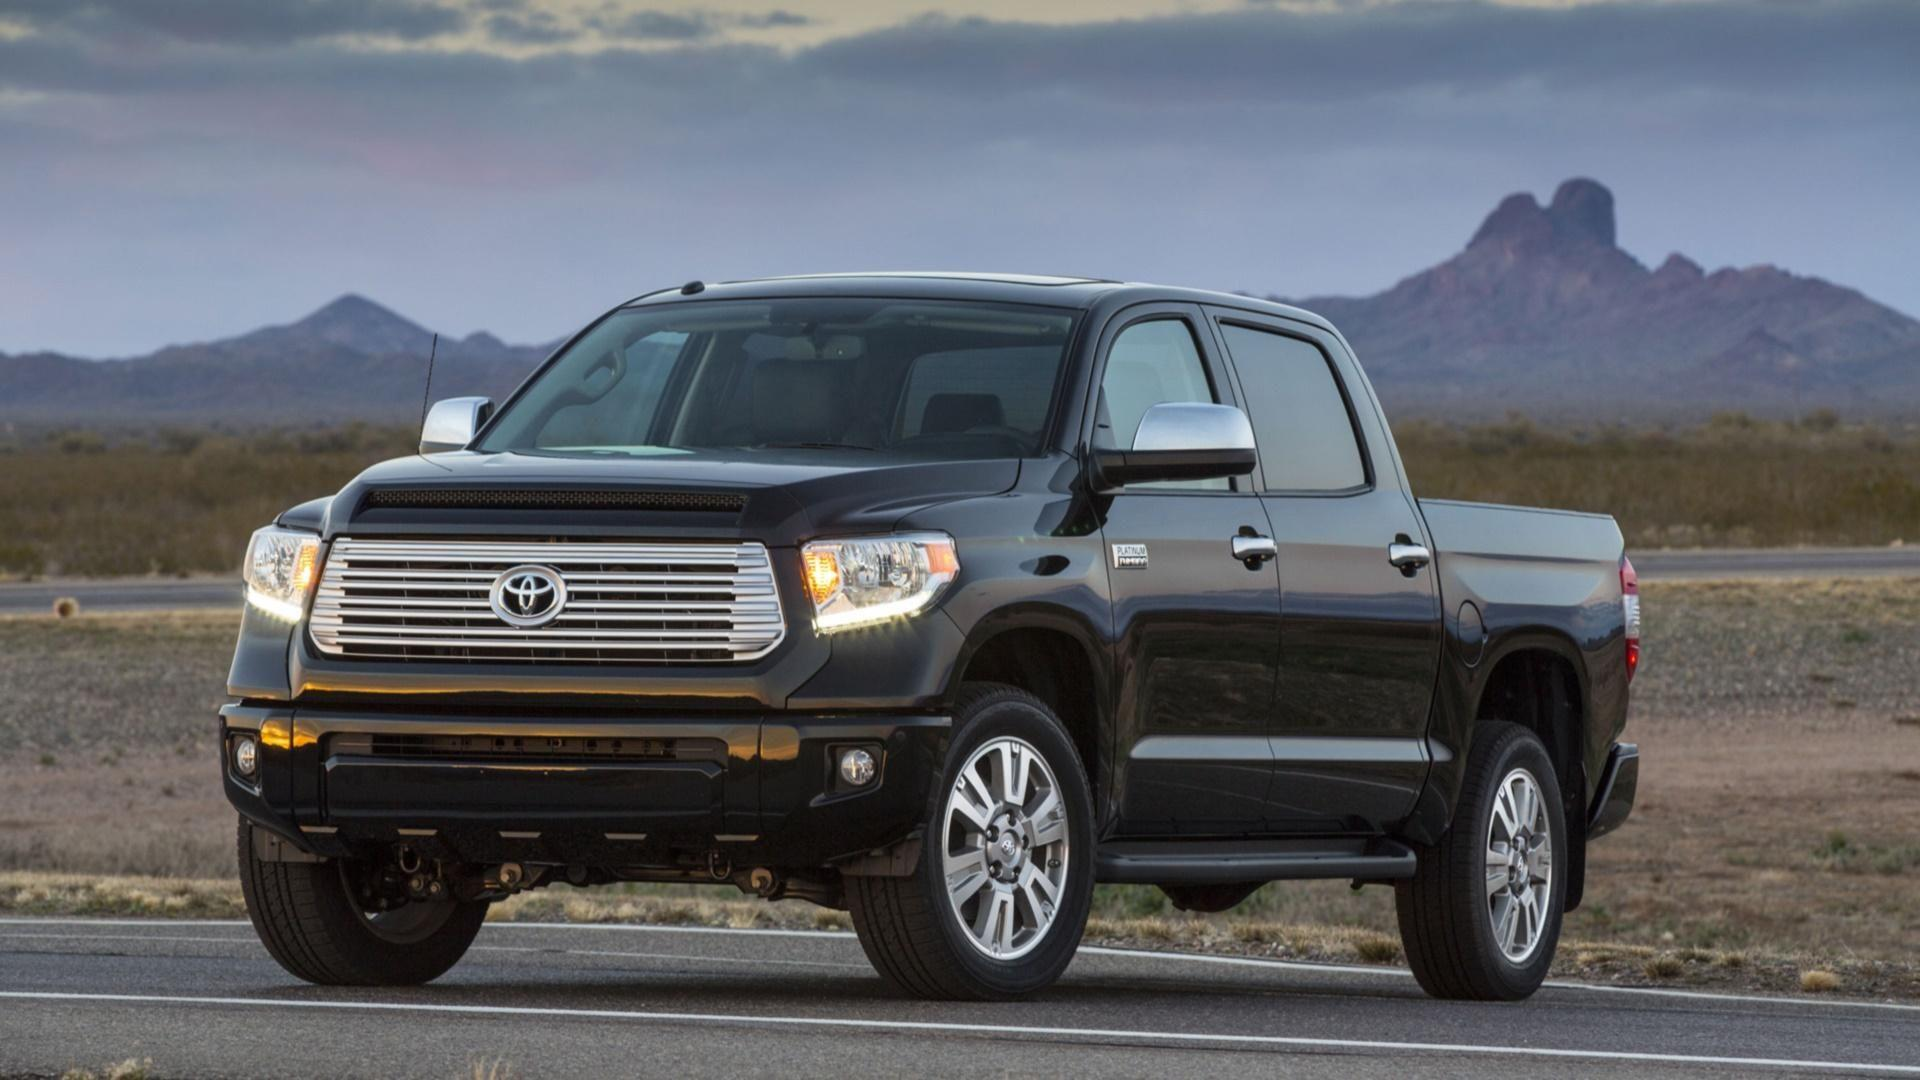 Toyota Tundra Wallpapers HD Download